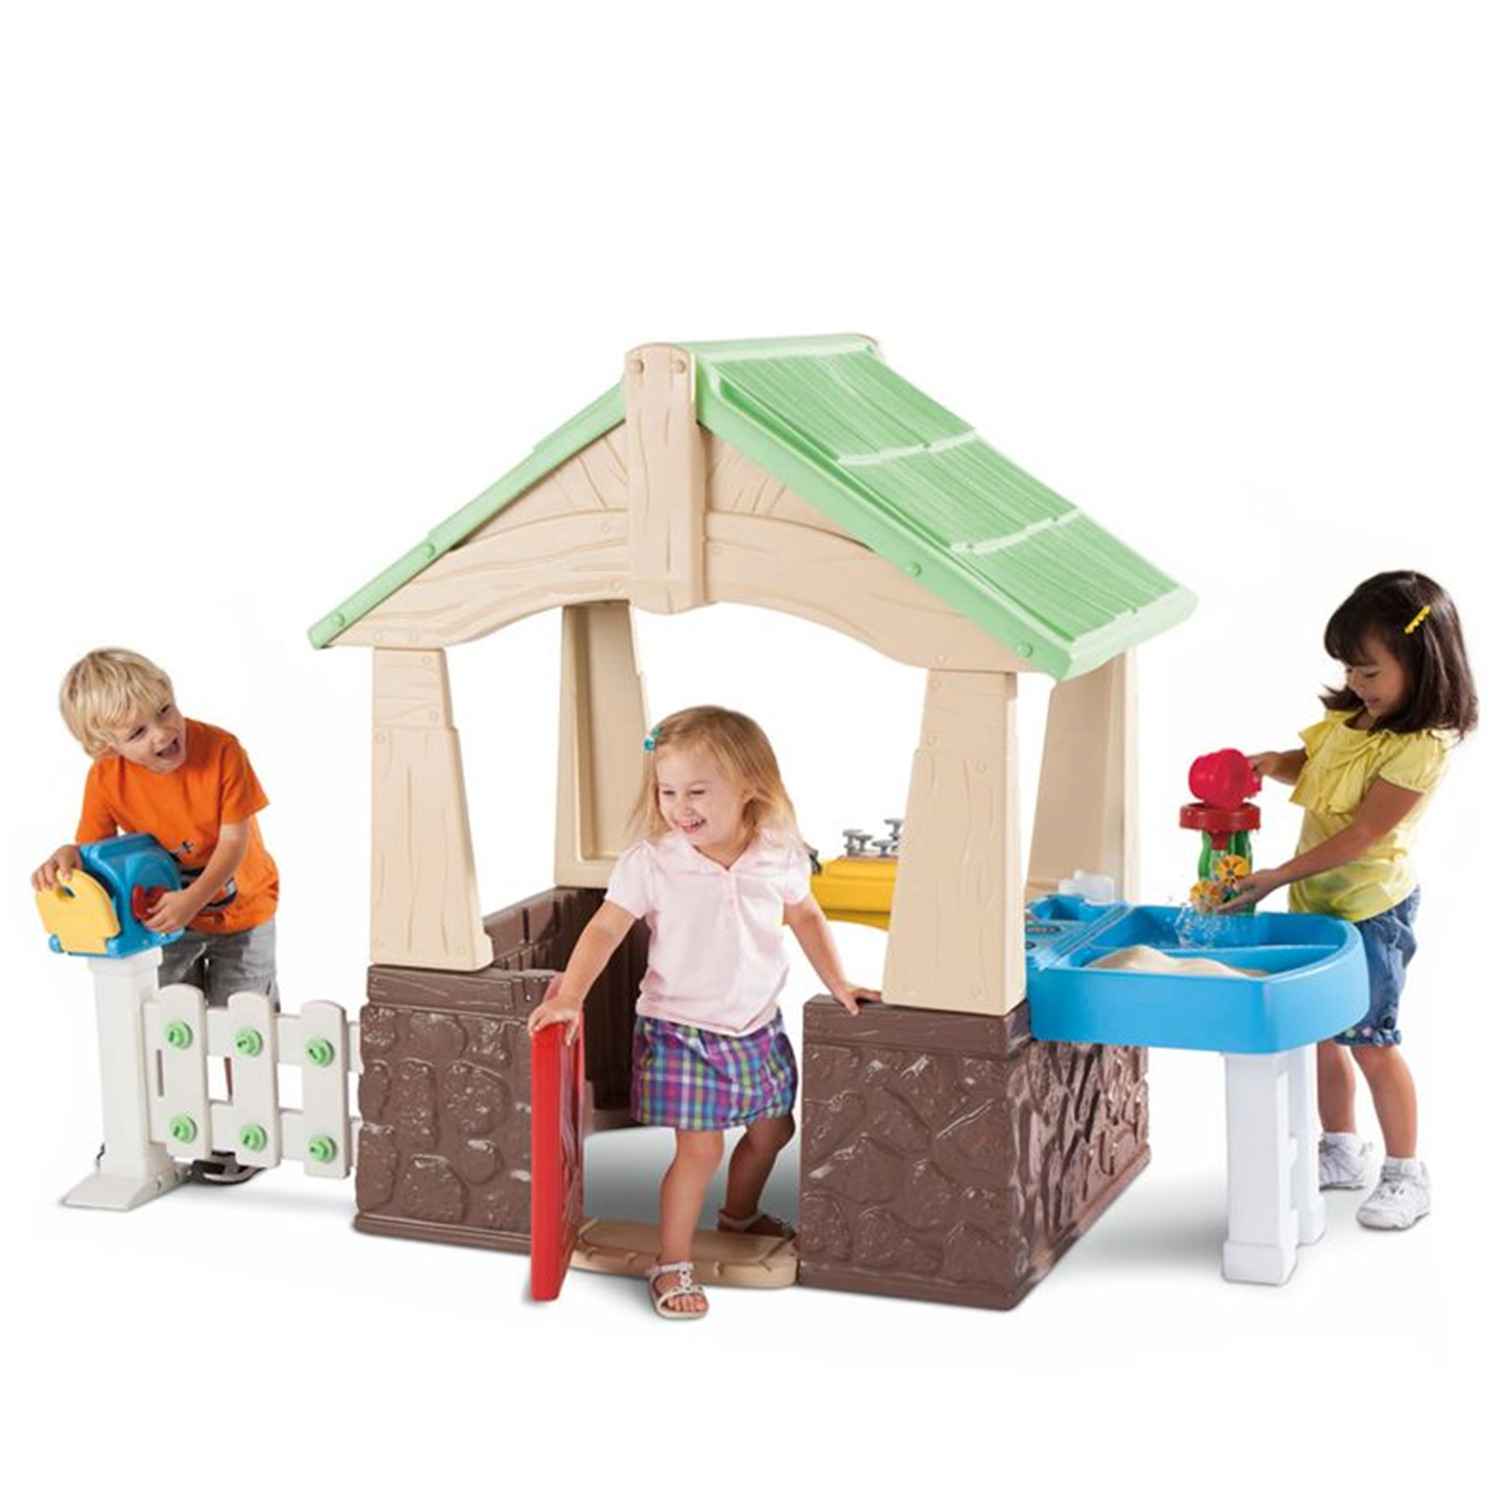 Little Tikes | OJCommerce on little tikes kitchen accessories, little tikes get out and grill, little tikes toy kitchen, little tikes pizza kitchen, little tikes kitchen playset, little tikes cozy coupe shopping cart, little tikes play kitchen, little tikes grill and go, little tikes family kitchen, little tikes toddler kitchen set, little tikes 2 in 1 garden cart, little tikes coupe with cart, little tikes step 2 kitchen, little tikes kitchen corner, little tikes grow with me kitchen, little tikes gourmet prep n serve kitchen,